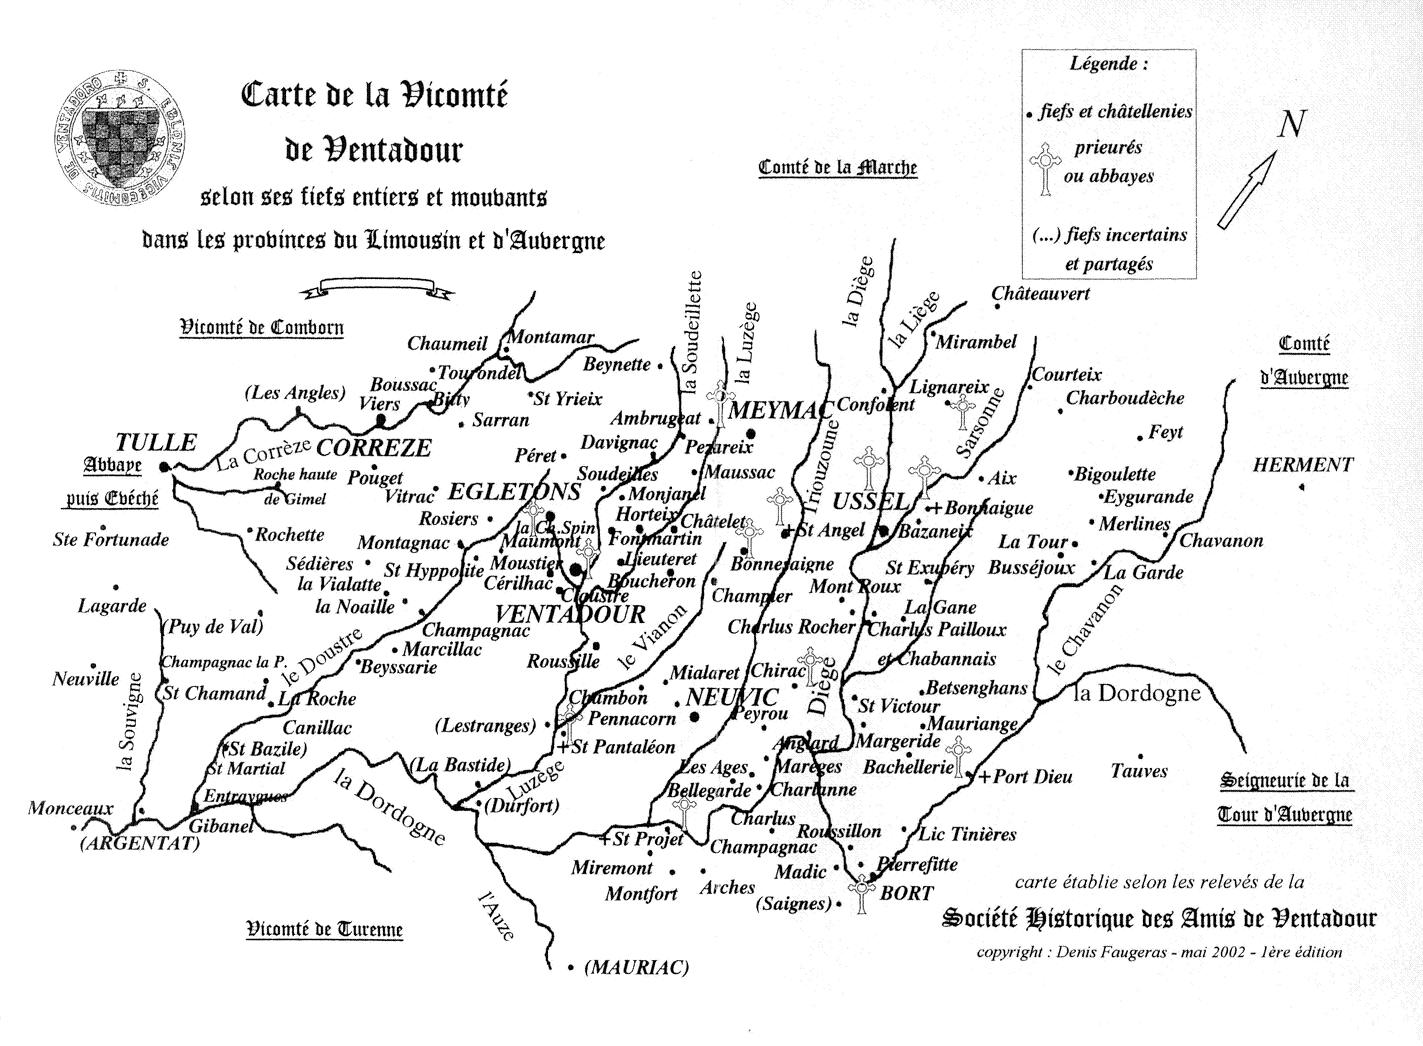 Carte vicomte copie